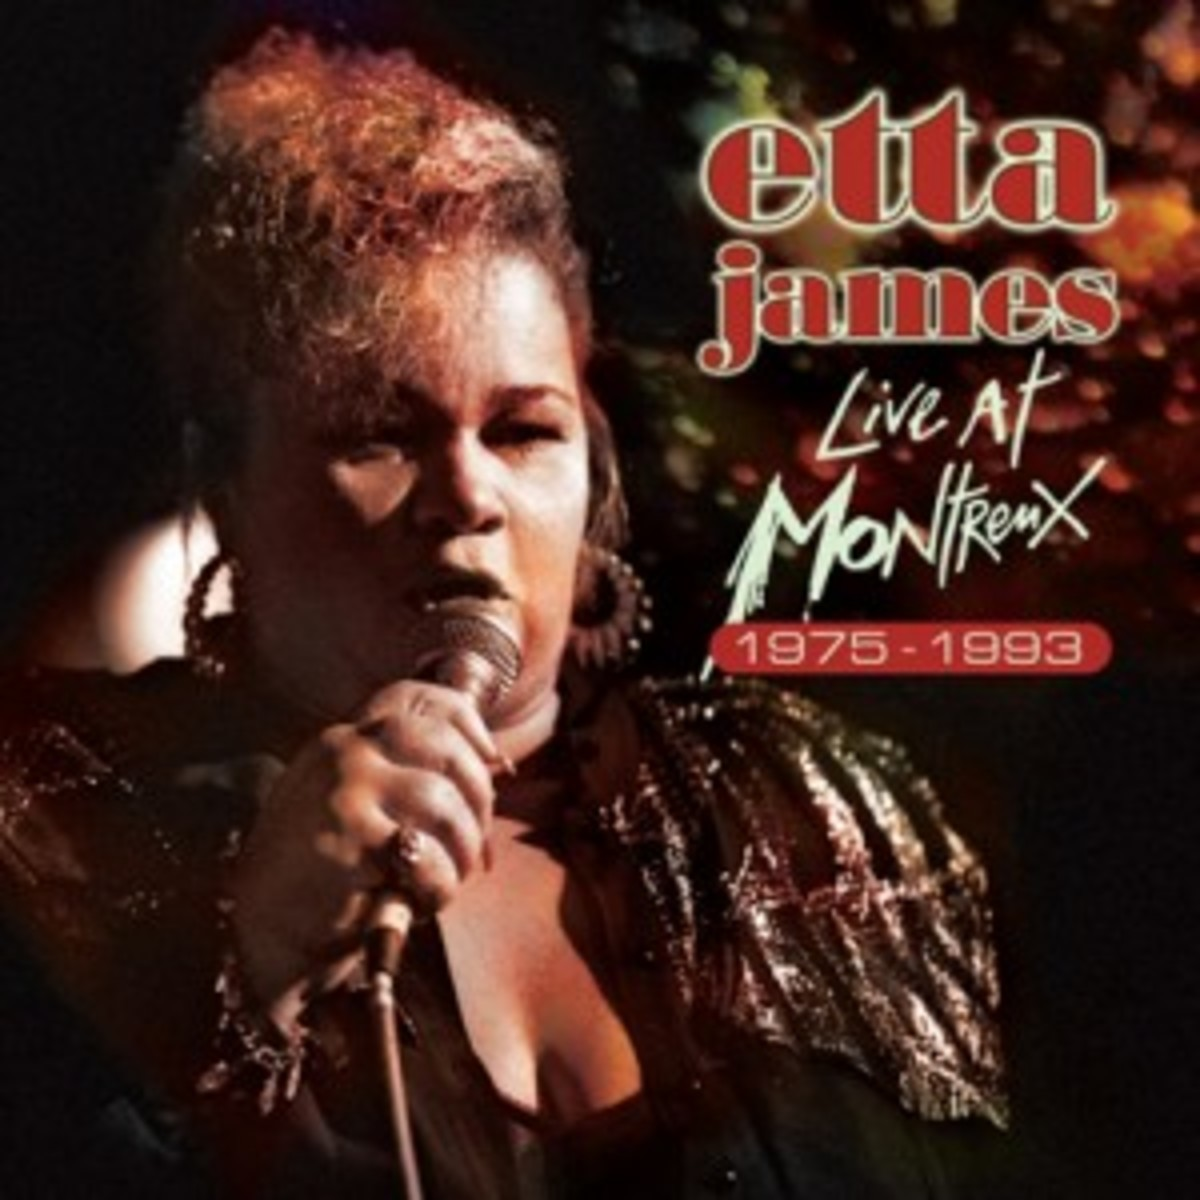 Etta James Live At Montreux